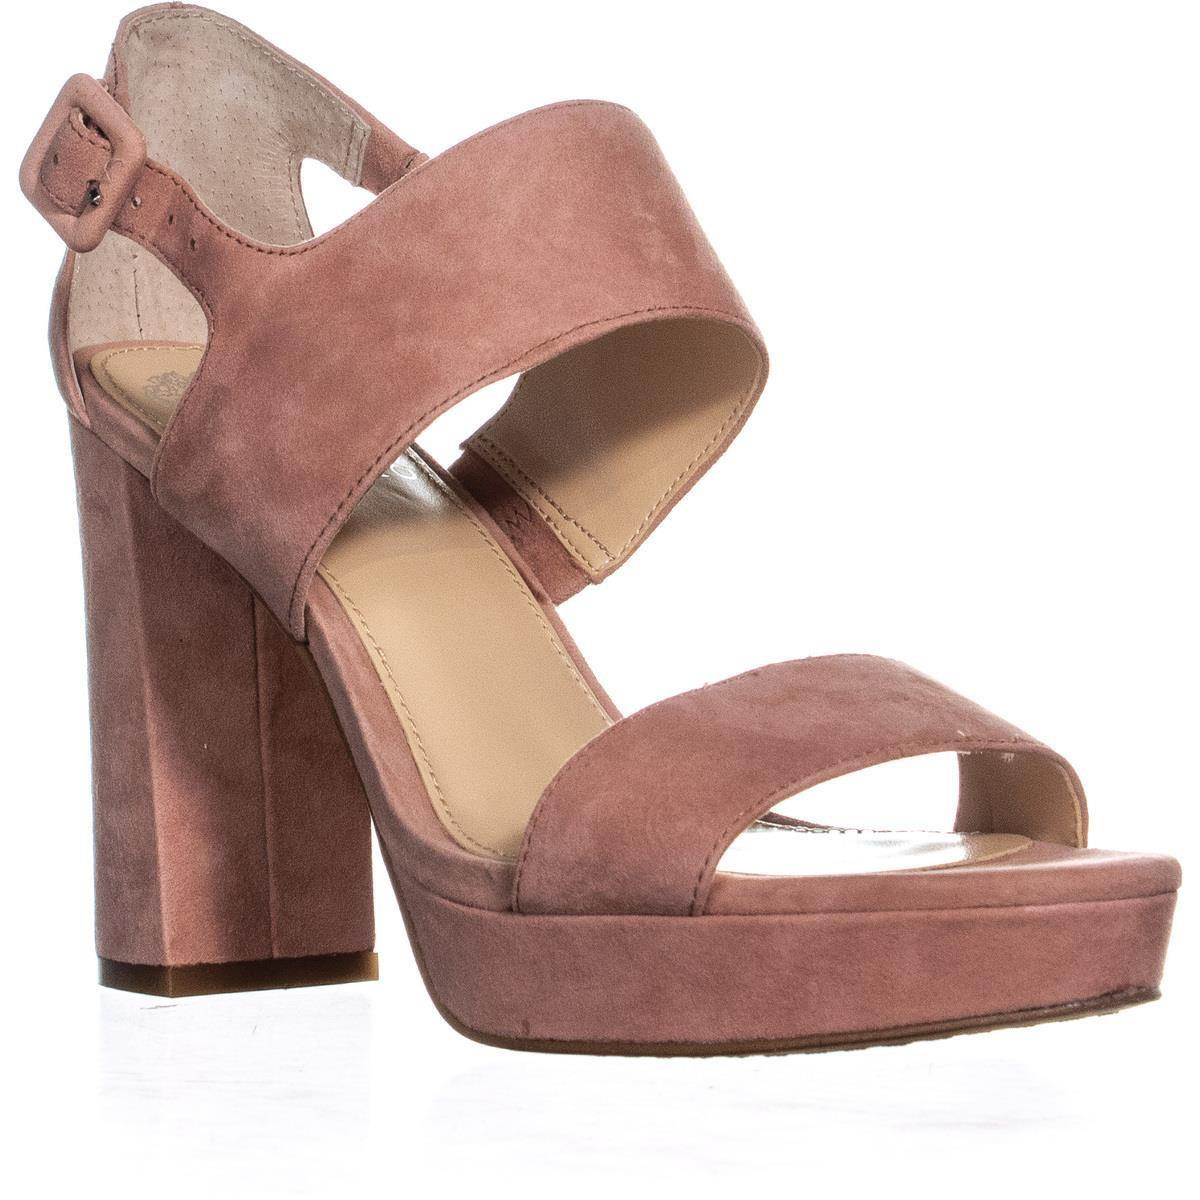 2b6ee69fabe Lyst - Vince Camuto Jayvid Block Heel Sandals in Pink